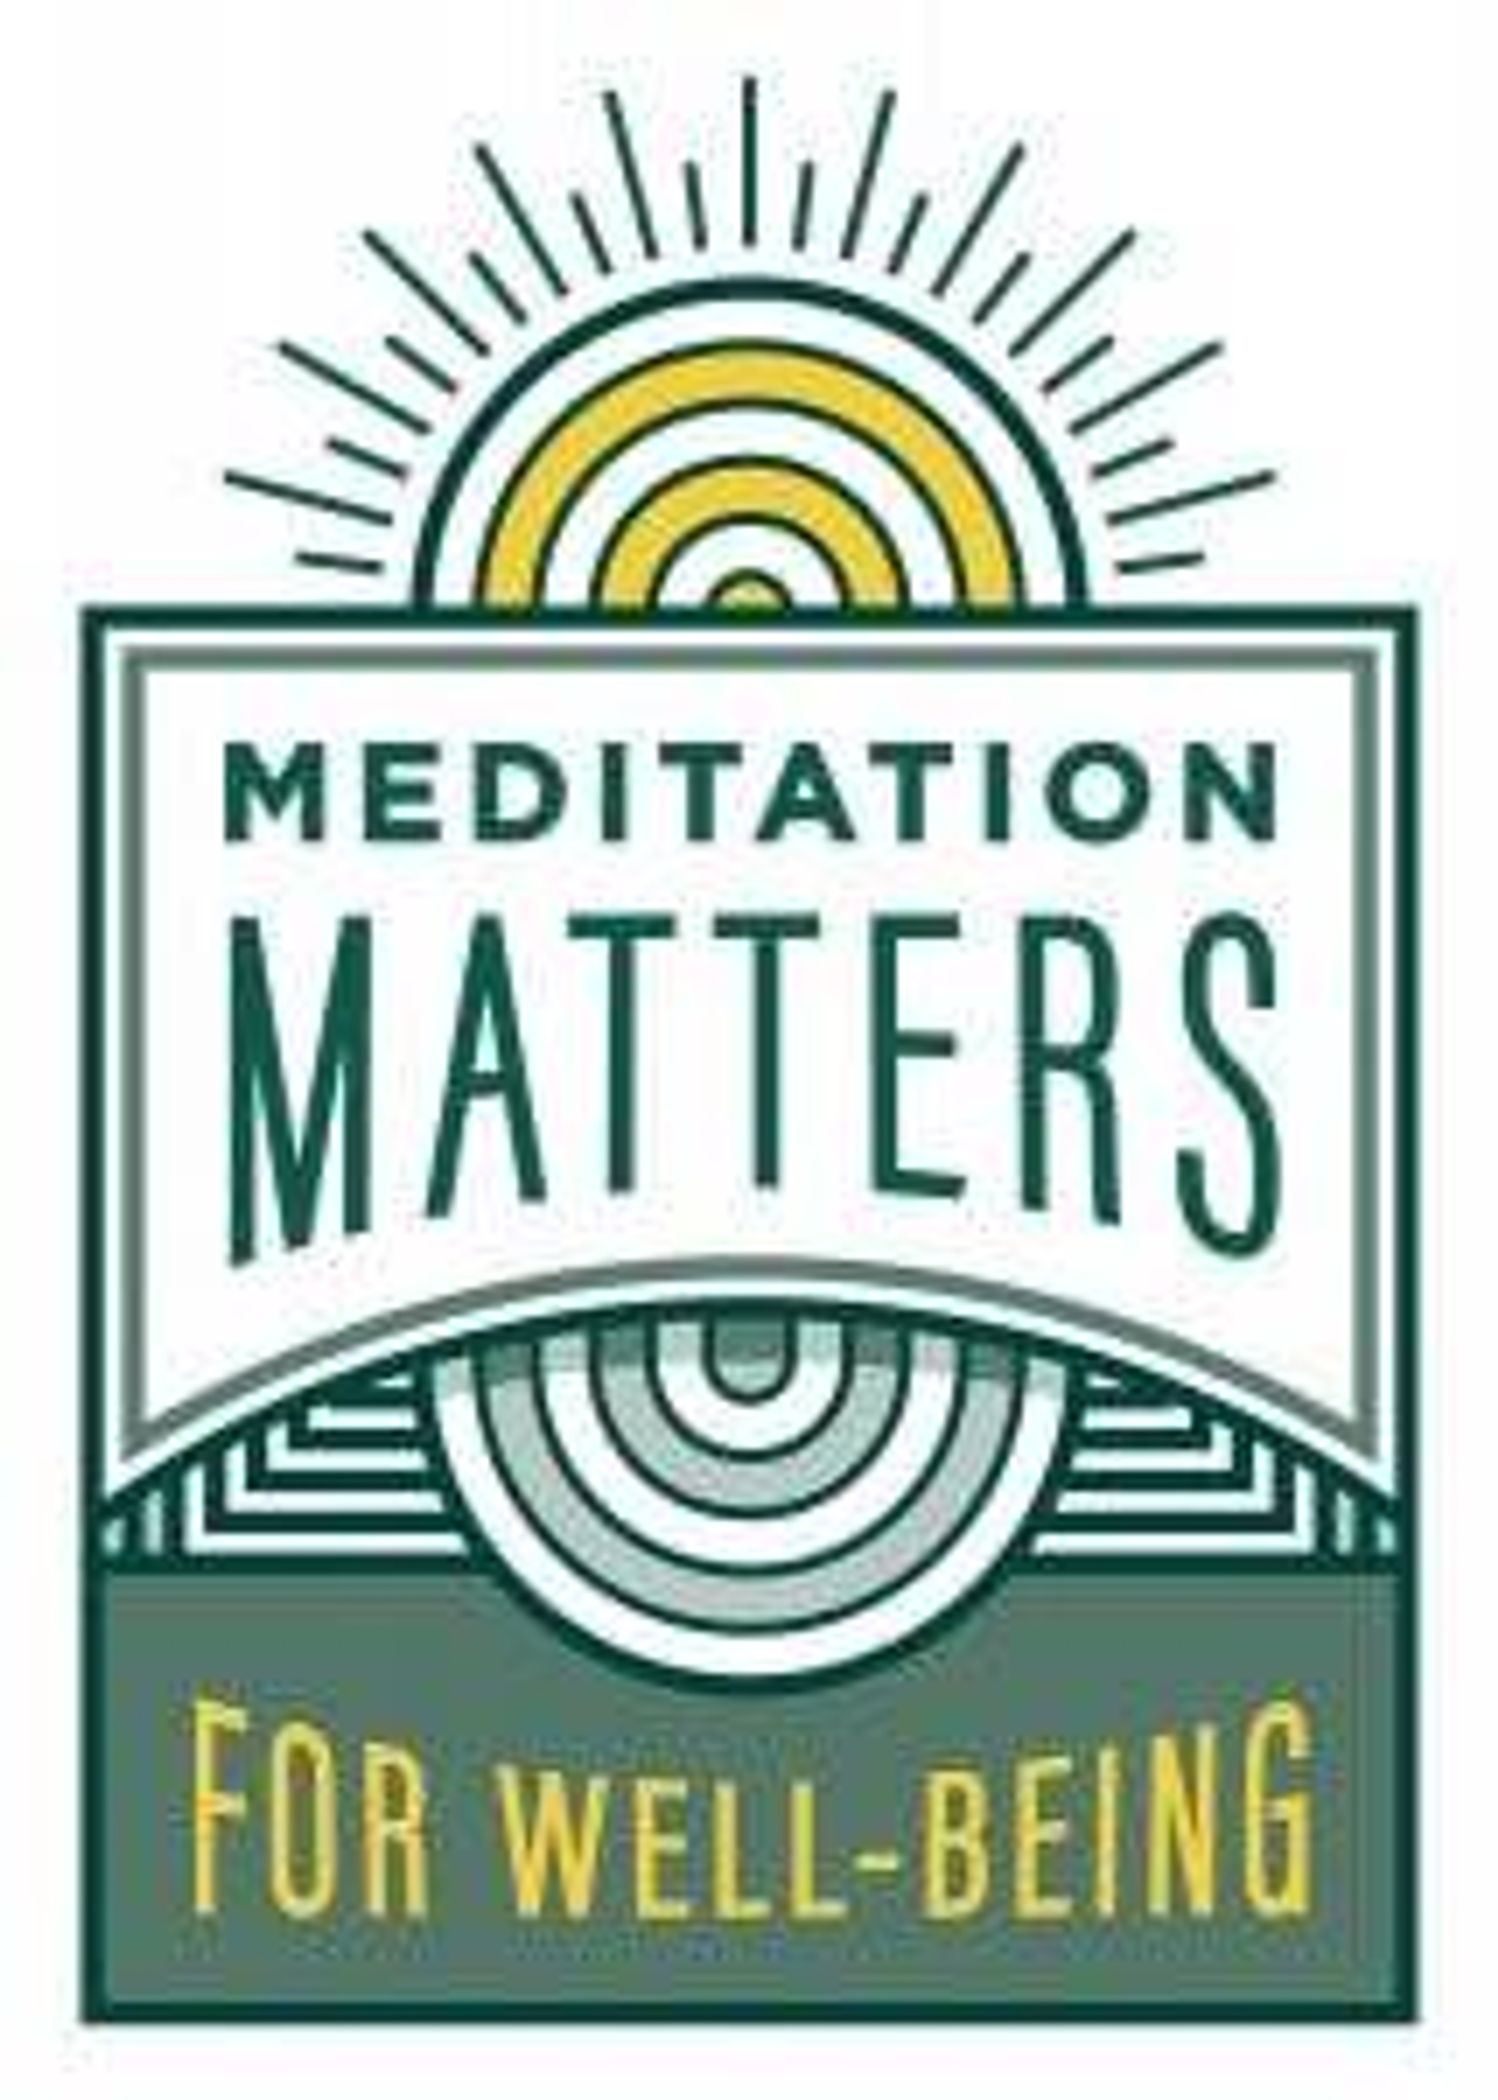 Meditation Matters for Well-Being